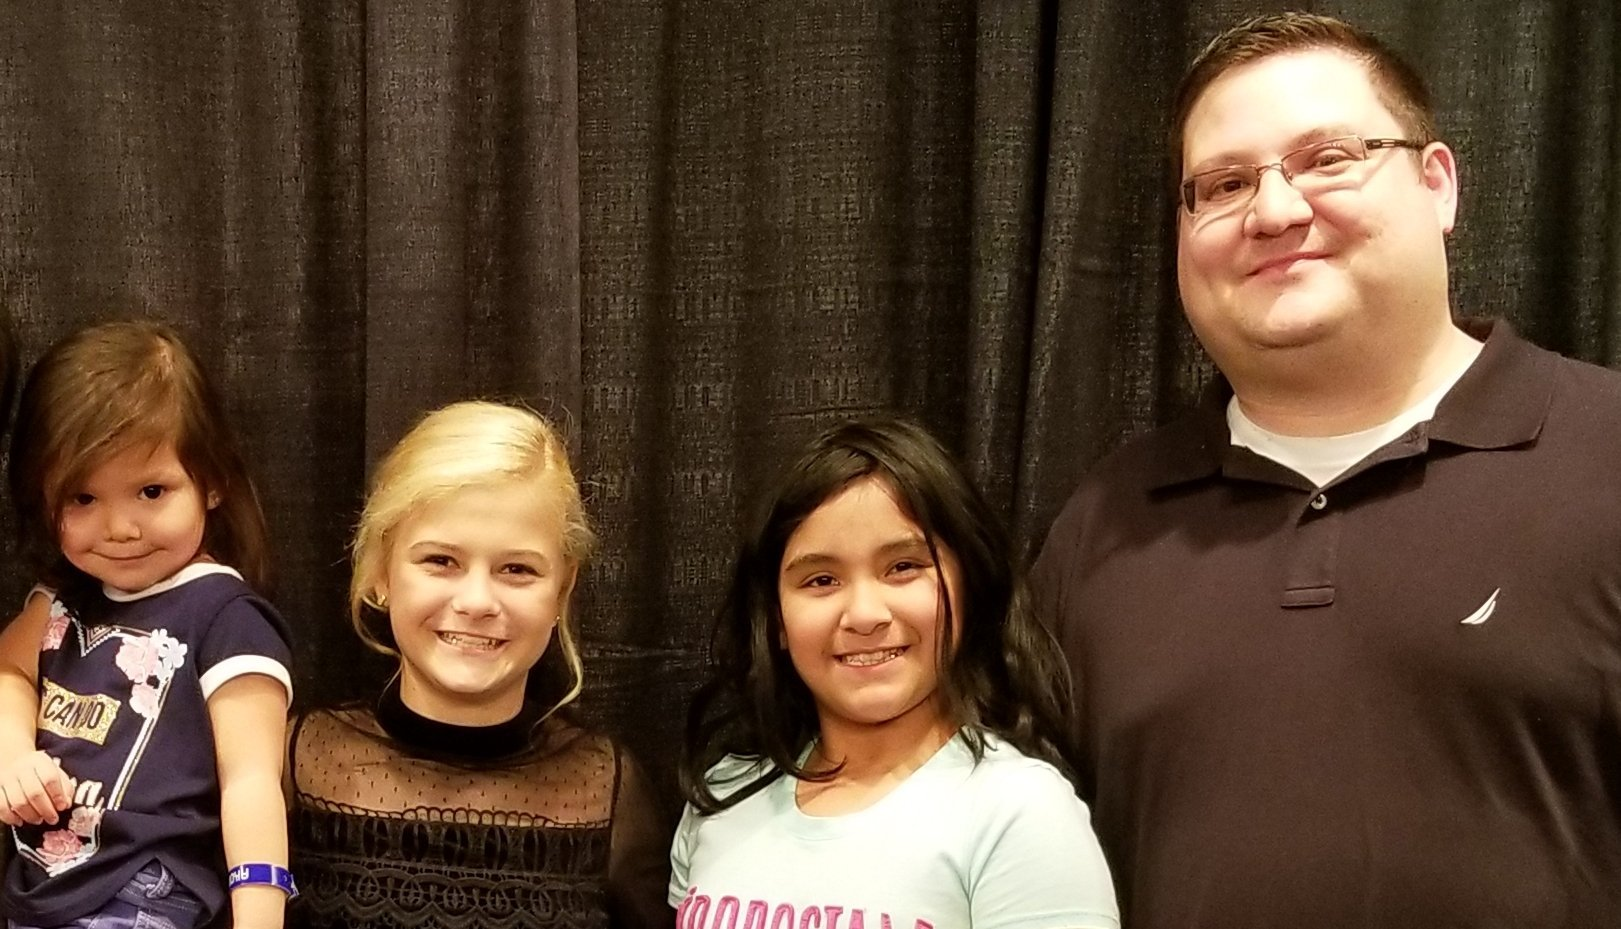 Thank you messages to veteran tickets foundation donors luis attended darci lynne and friends live vip meet and greet on feb 11th 2018 kristyandbryce Gallery